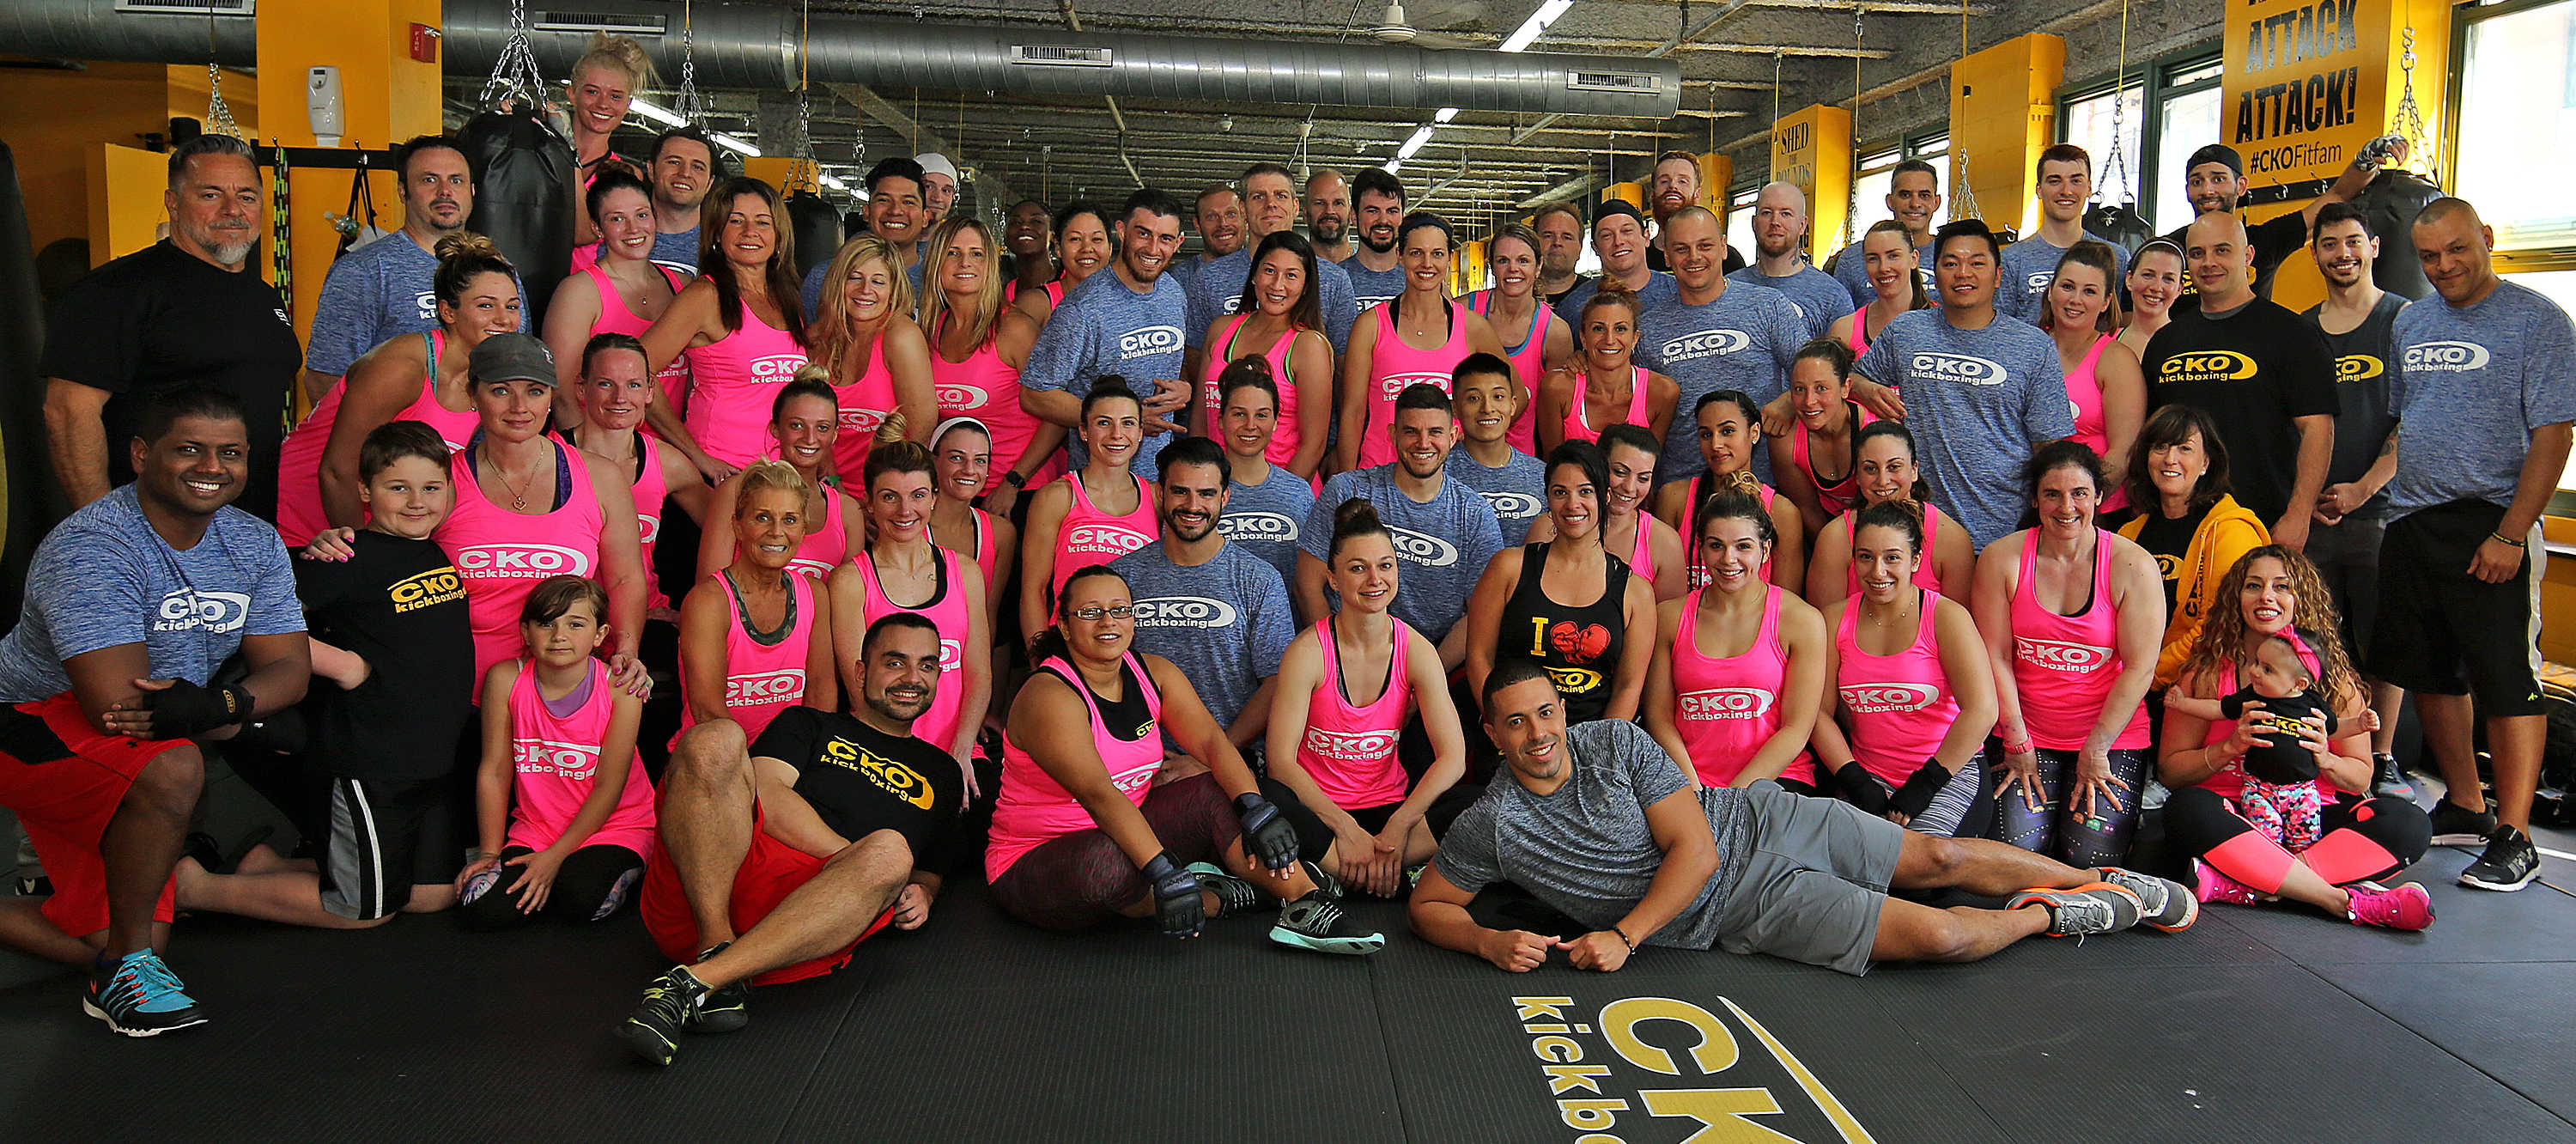 CKO Trainers Posing Together